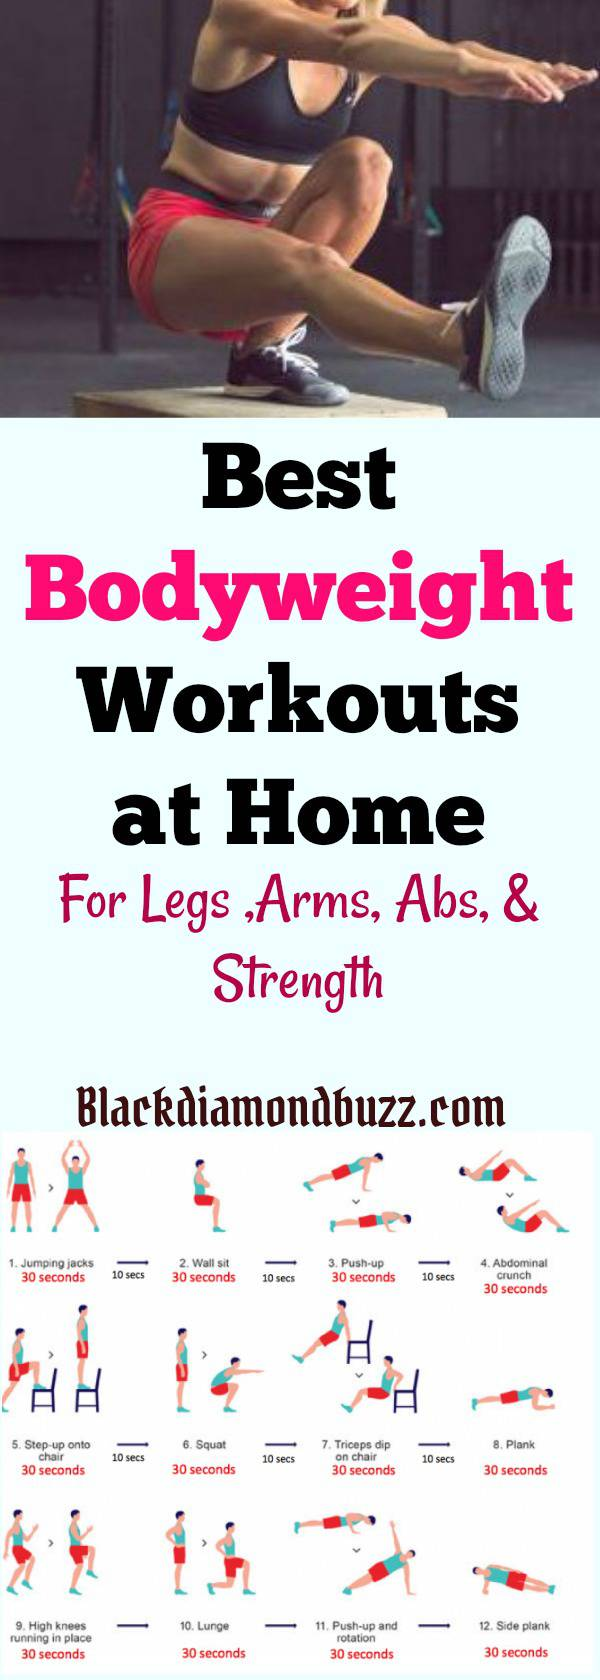 7 Best Bodyweight Exercises for Weight Loss at Home - For Legs, Arms ...